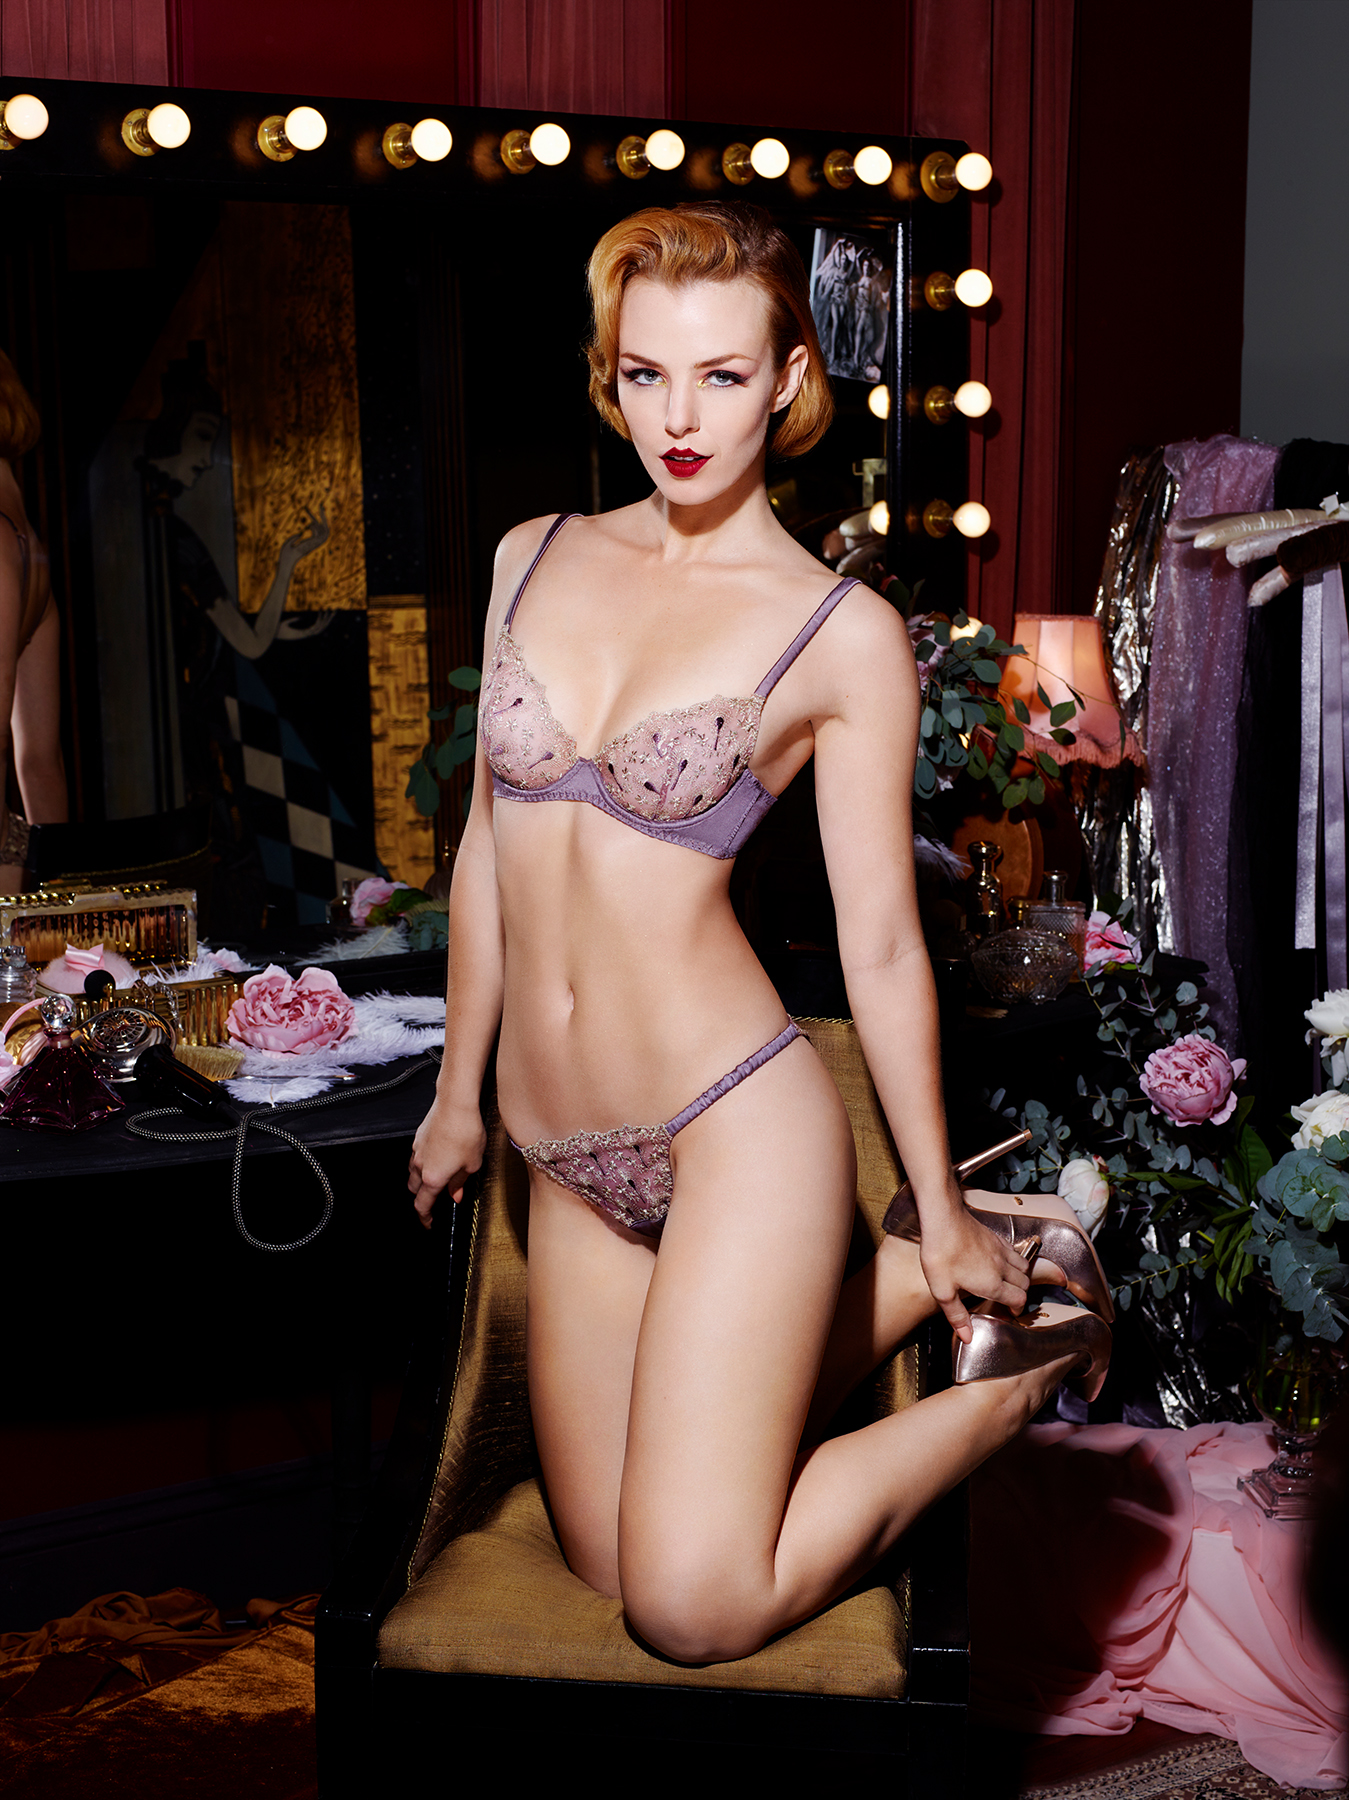 Top 10 Intimates & Underwear Fashion Ad Campaigns 2019